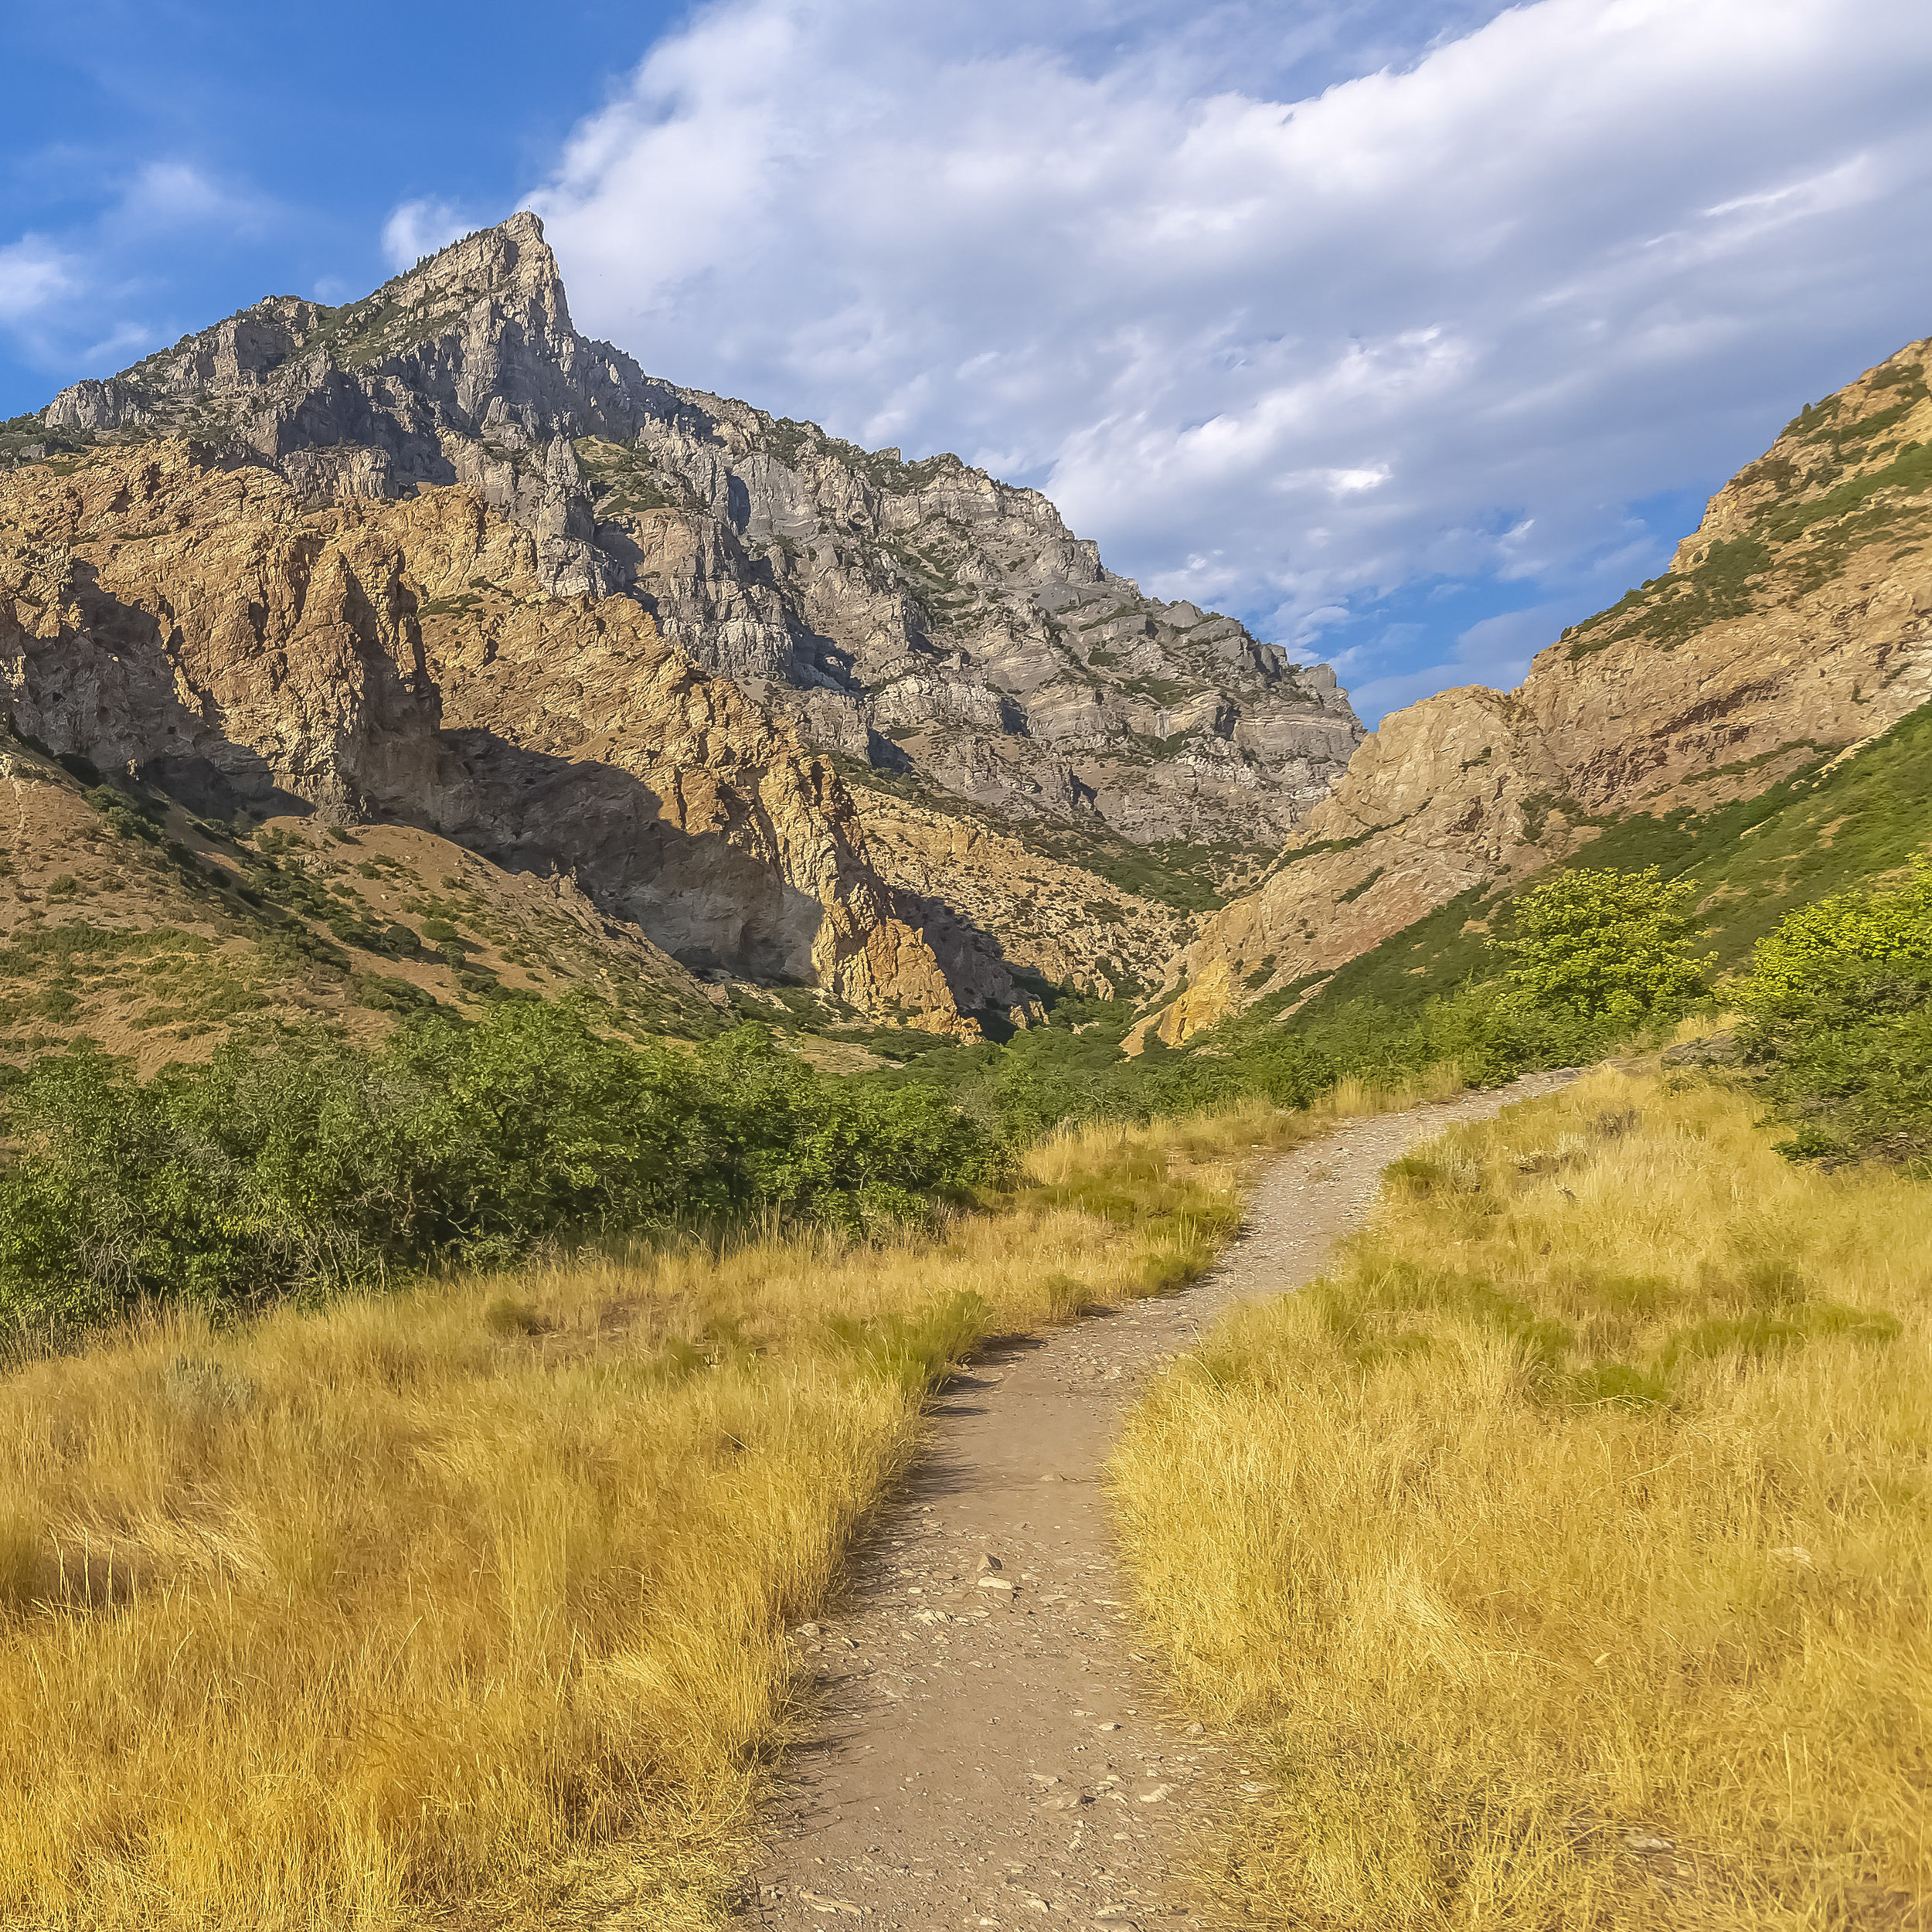 Trail leading to the rough mountain in Provo Utah.JPG